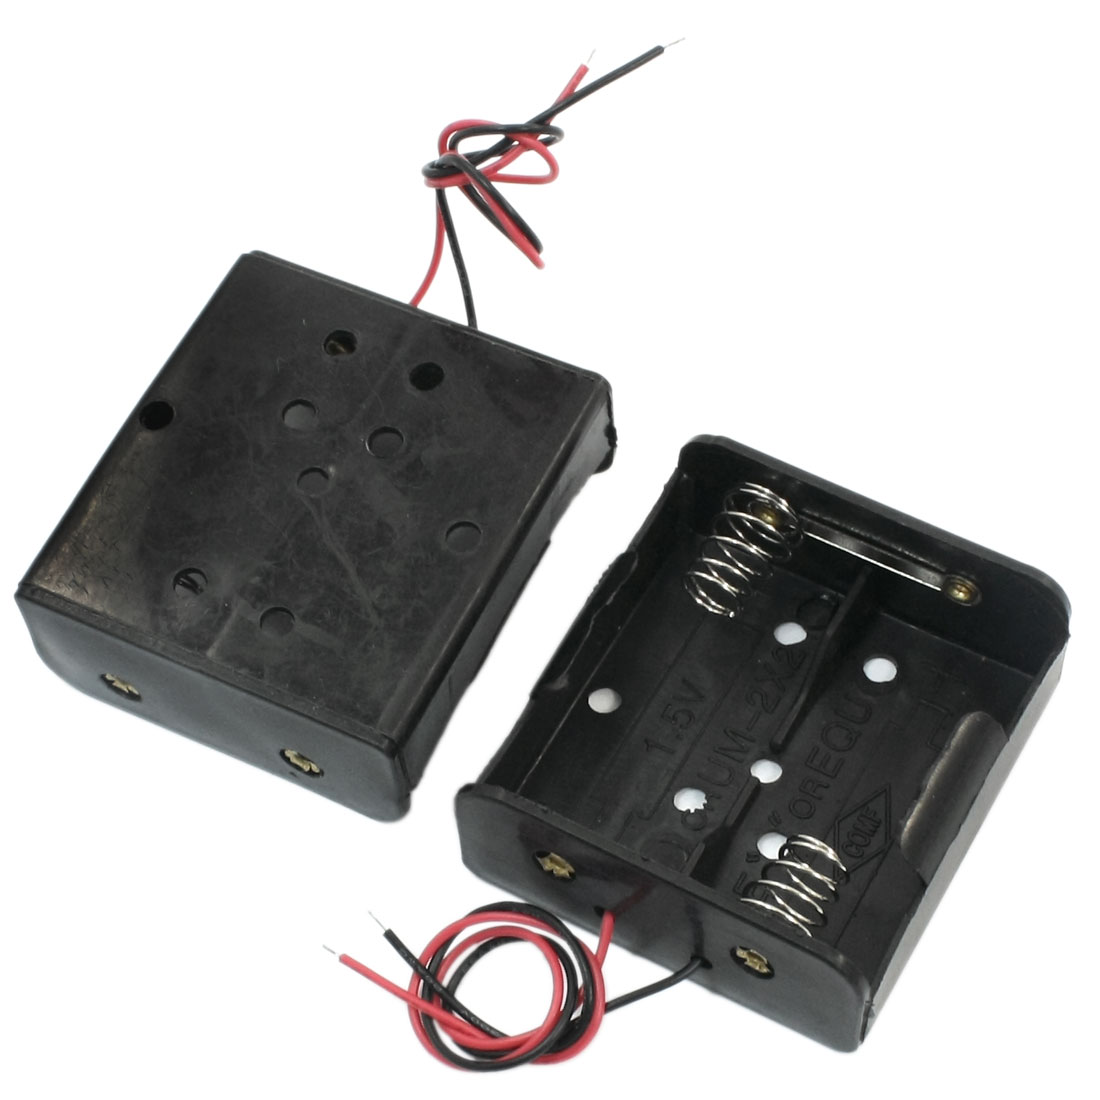 3 Pcs 2-Wire Spring Loaded Black Plastic Shell 2 x C 1.5V Battery Holders Cases Cell Boxes